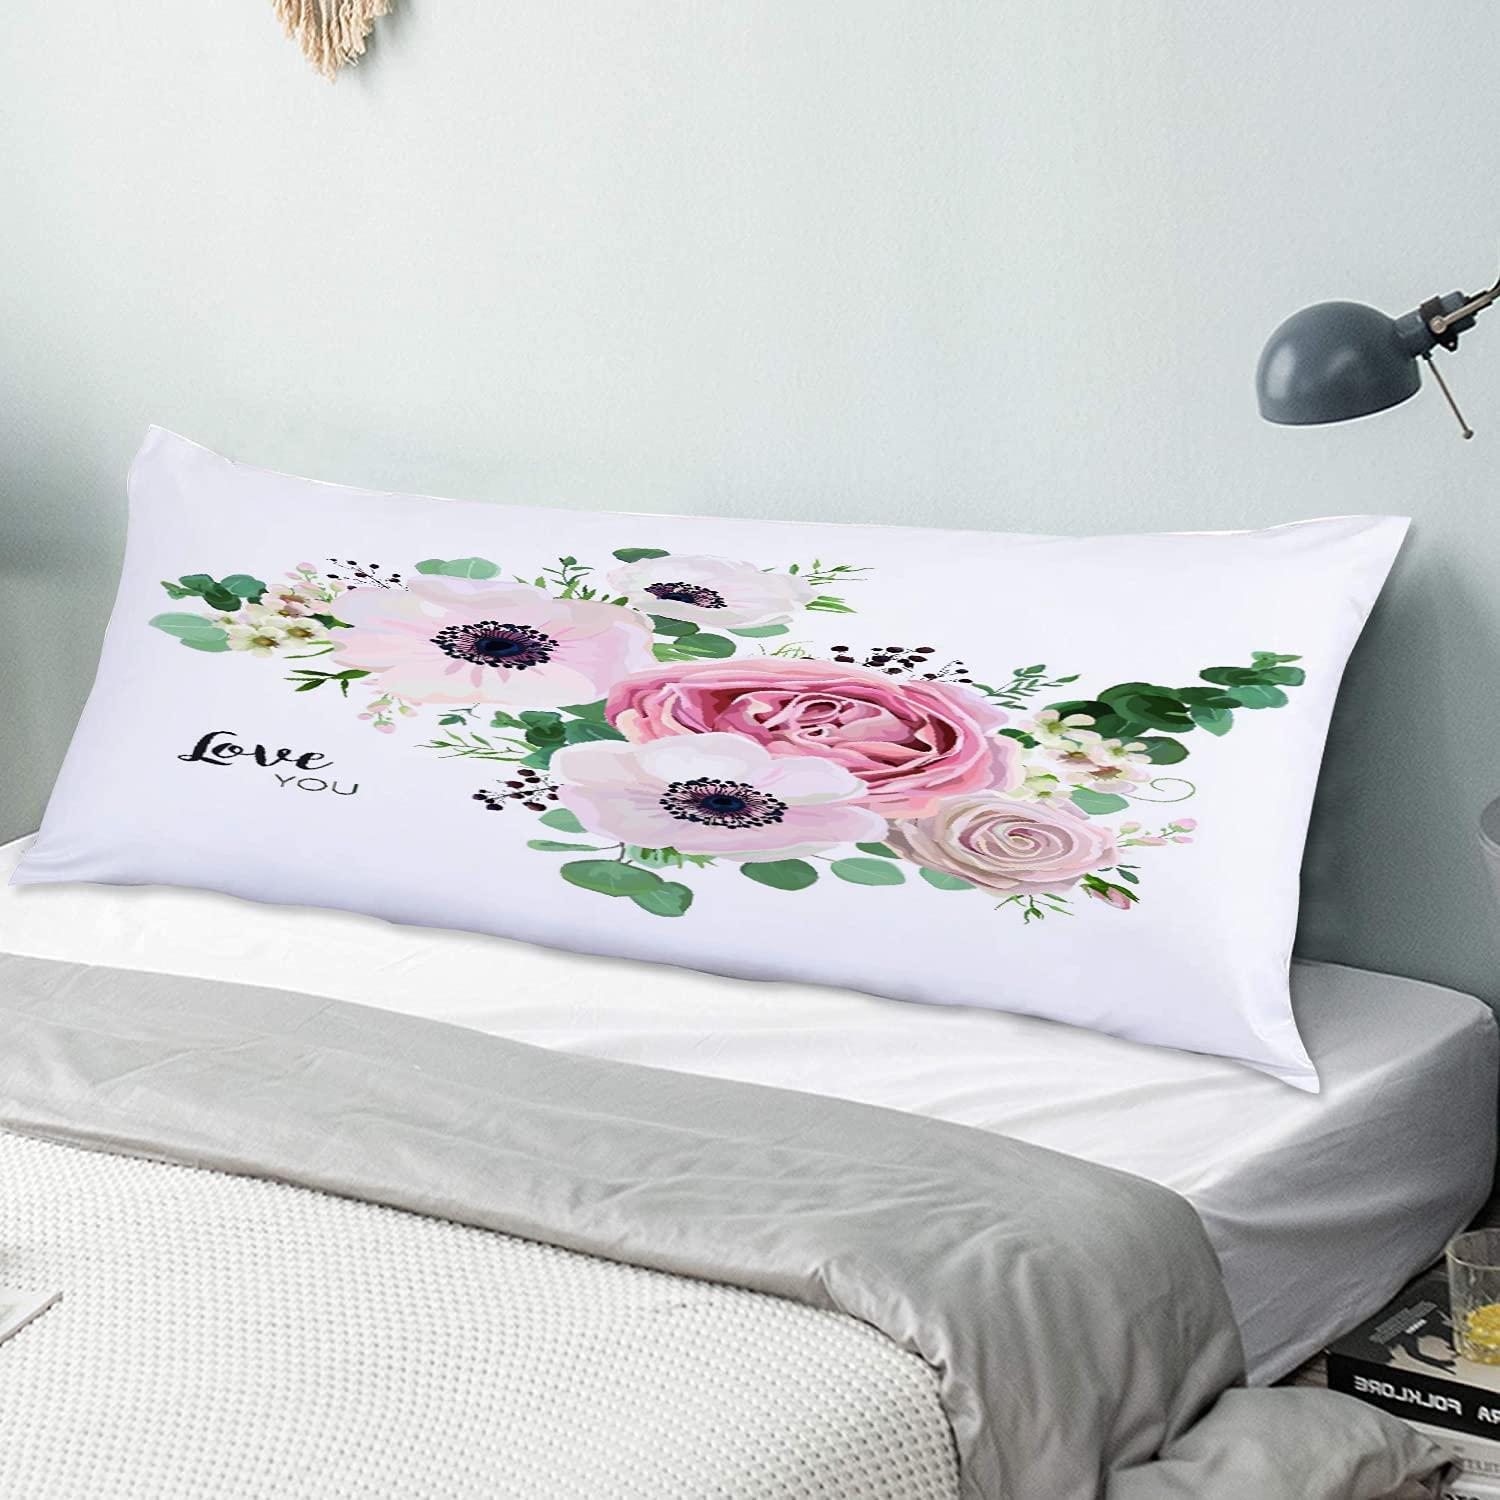 Personalized Long Pillowcase Soft Cozy,Garden Flower Lavender Pink Peach Rose White Anemone Wax Green Eucalyptus,Body Pillow Cover sham with Hidden Zipper Closure Home Decor Bedroom Sofa,54 x 20in